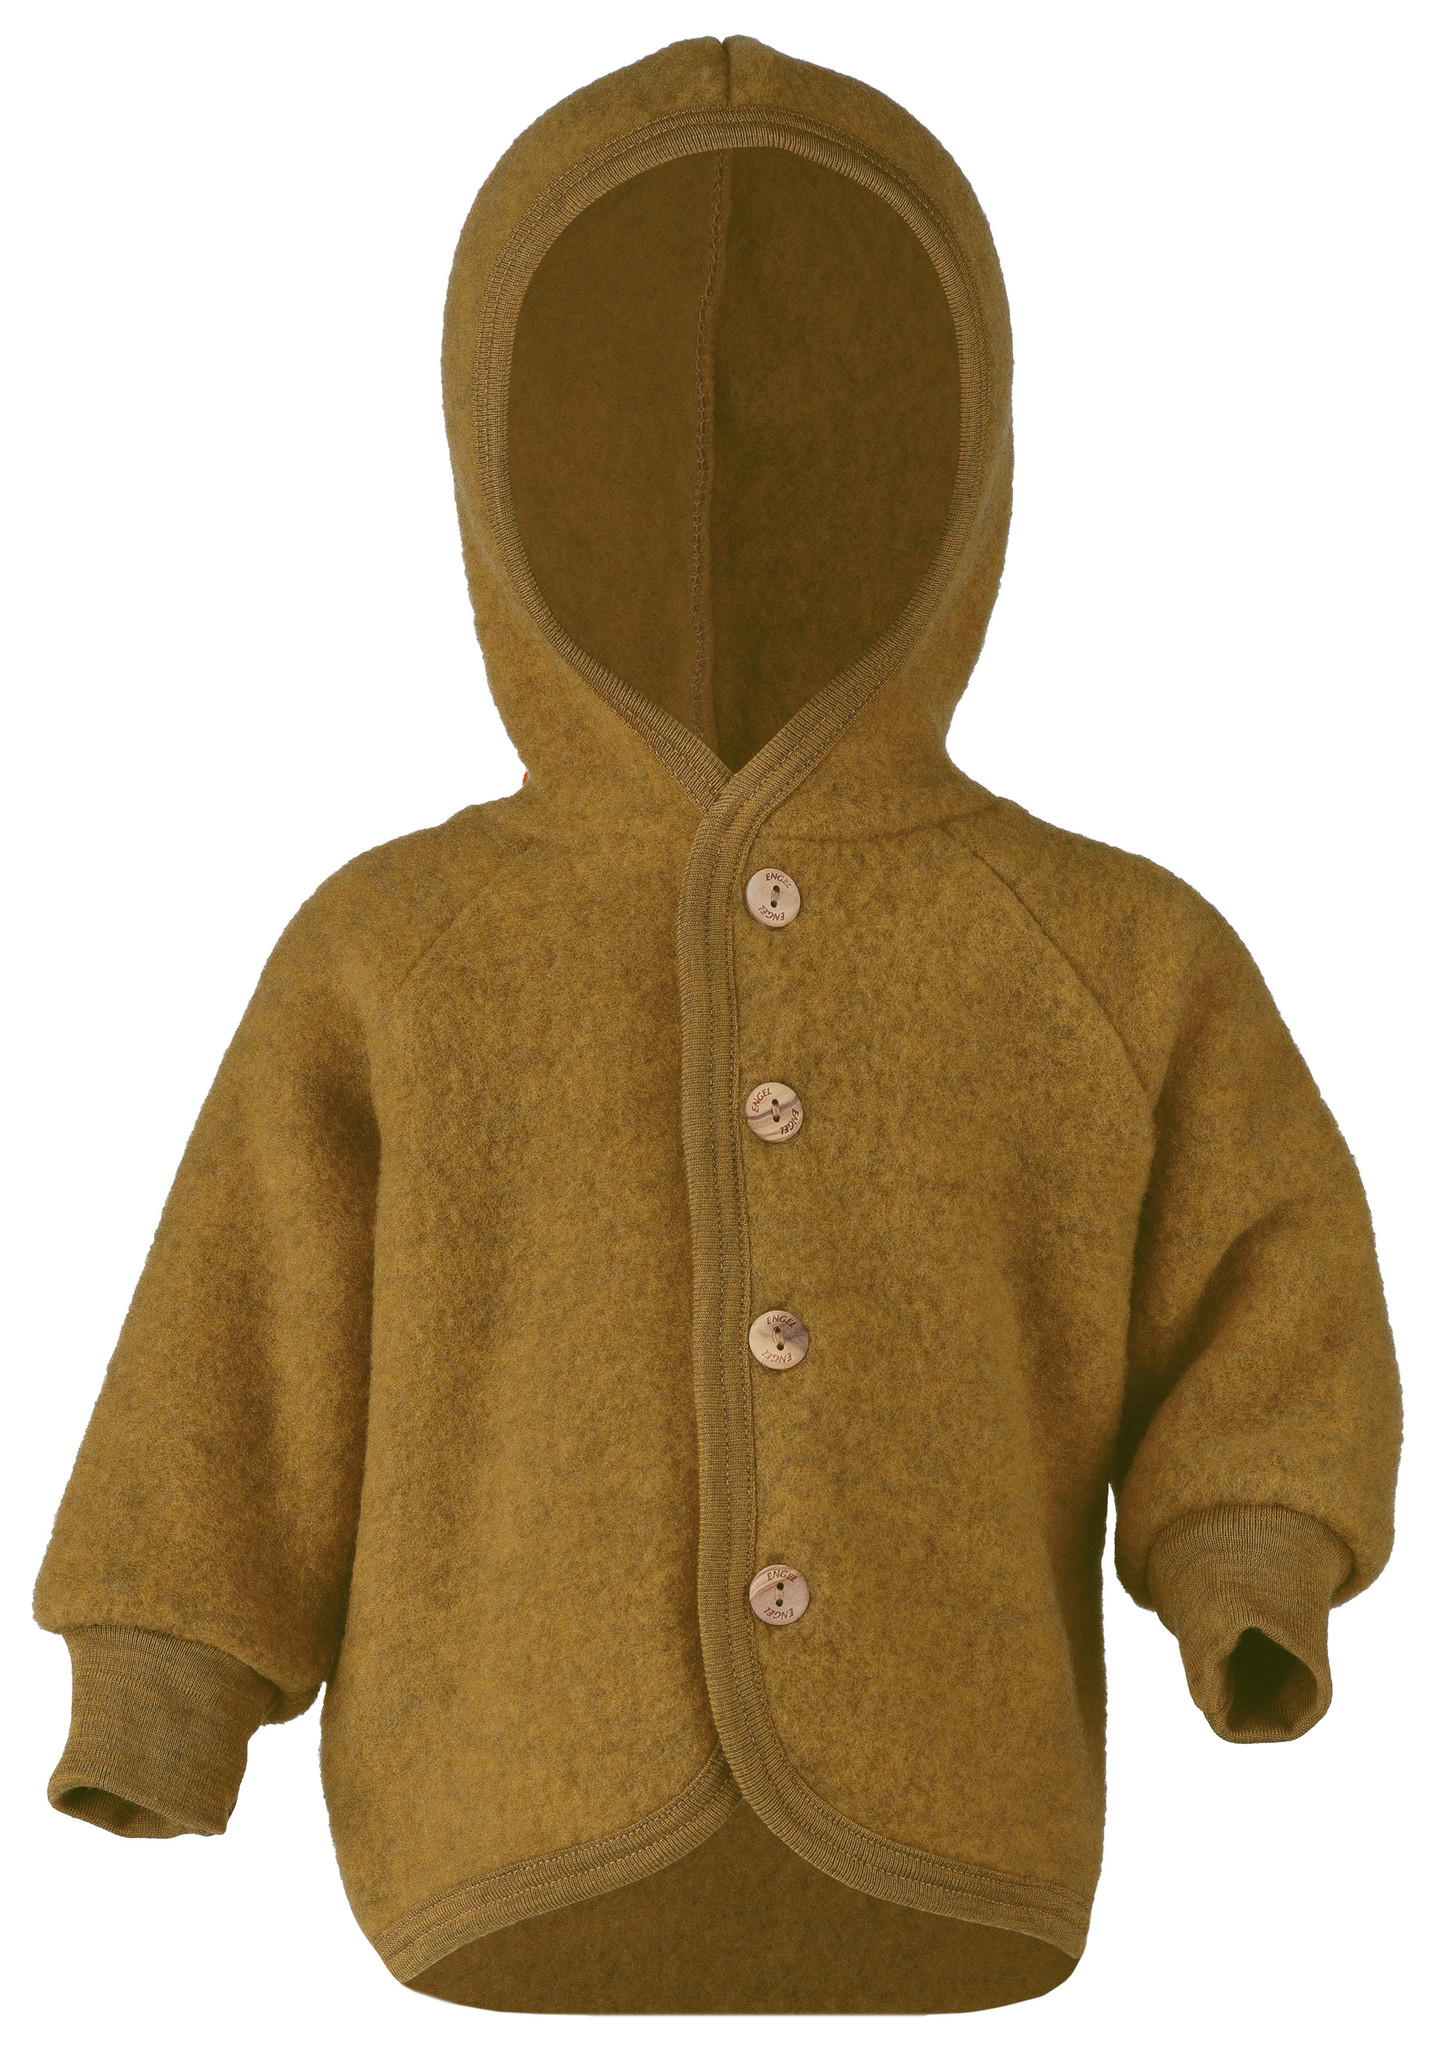 Engel Natur wool baby jacket - 100% merino wool fleece - ocher - 50 to 92